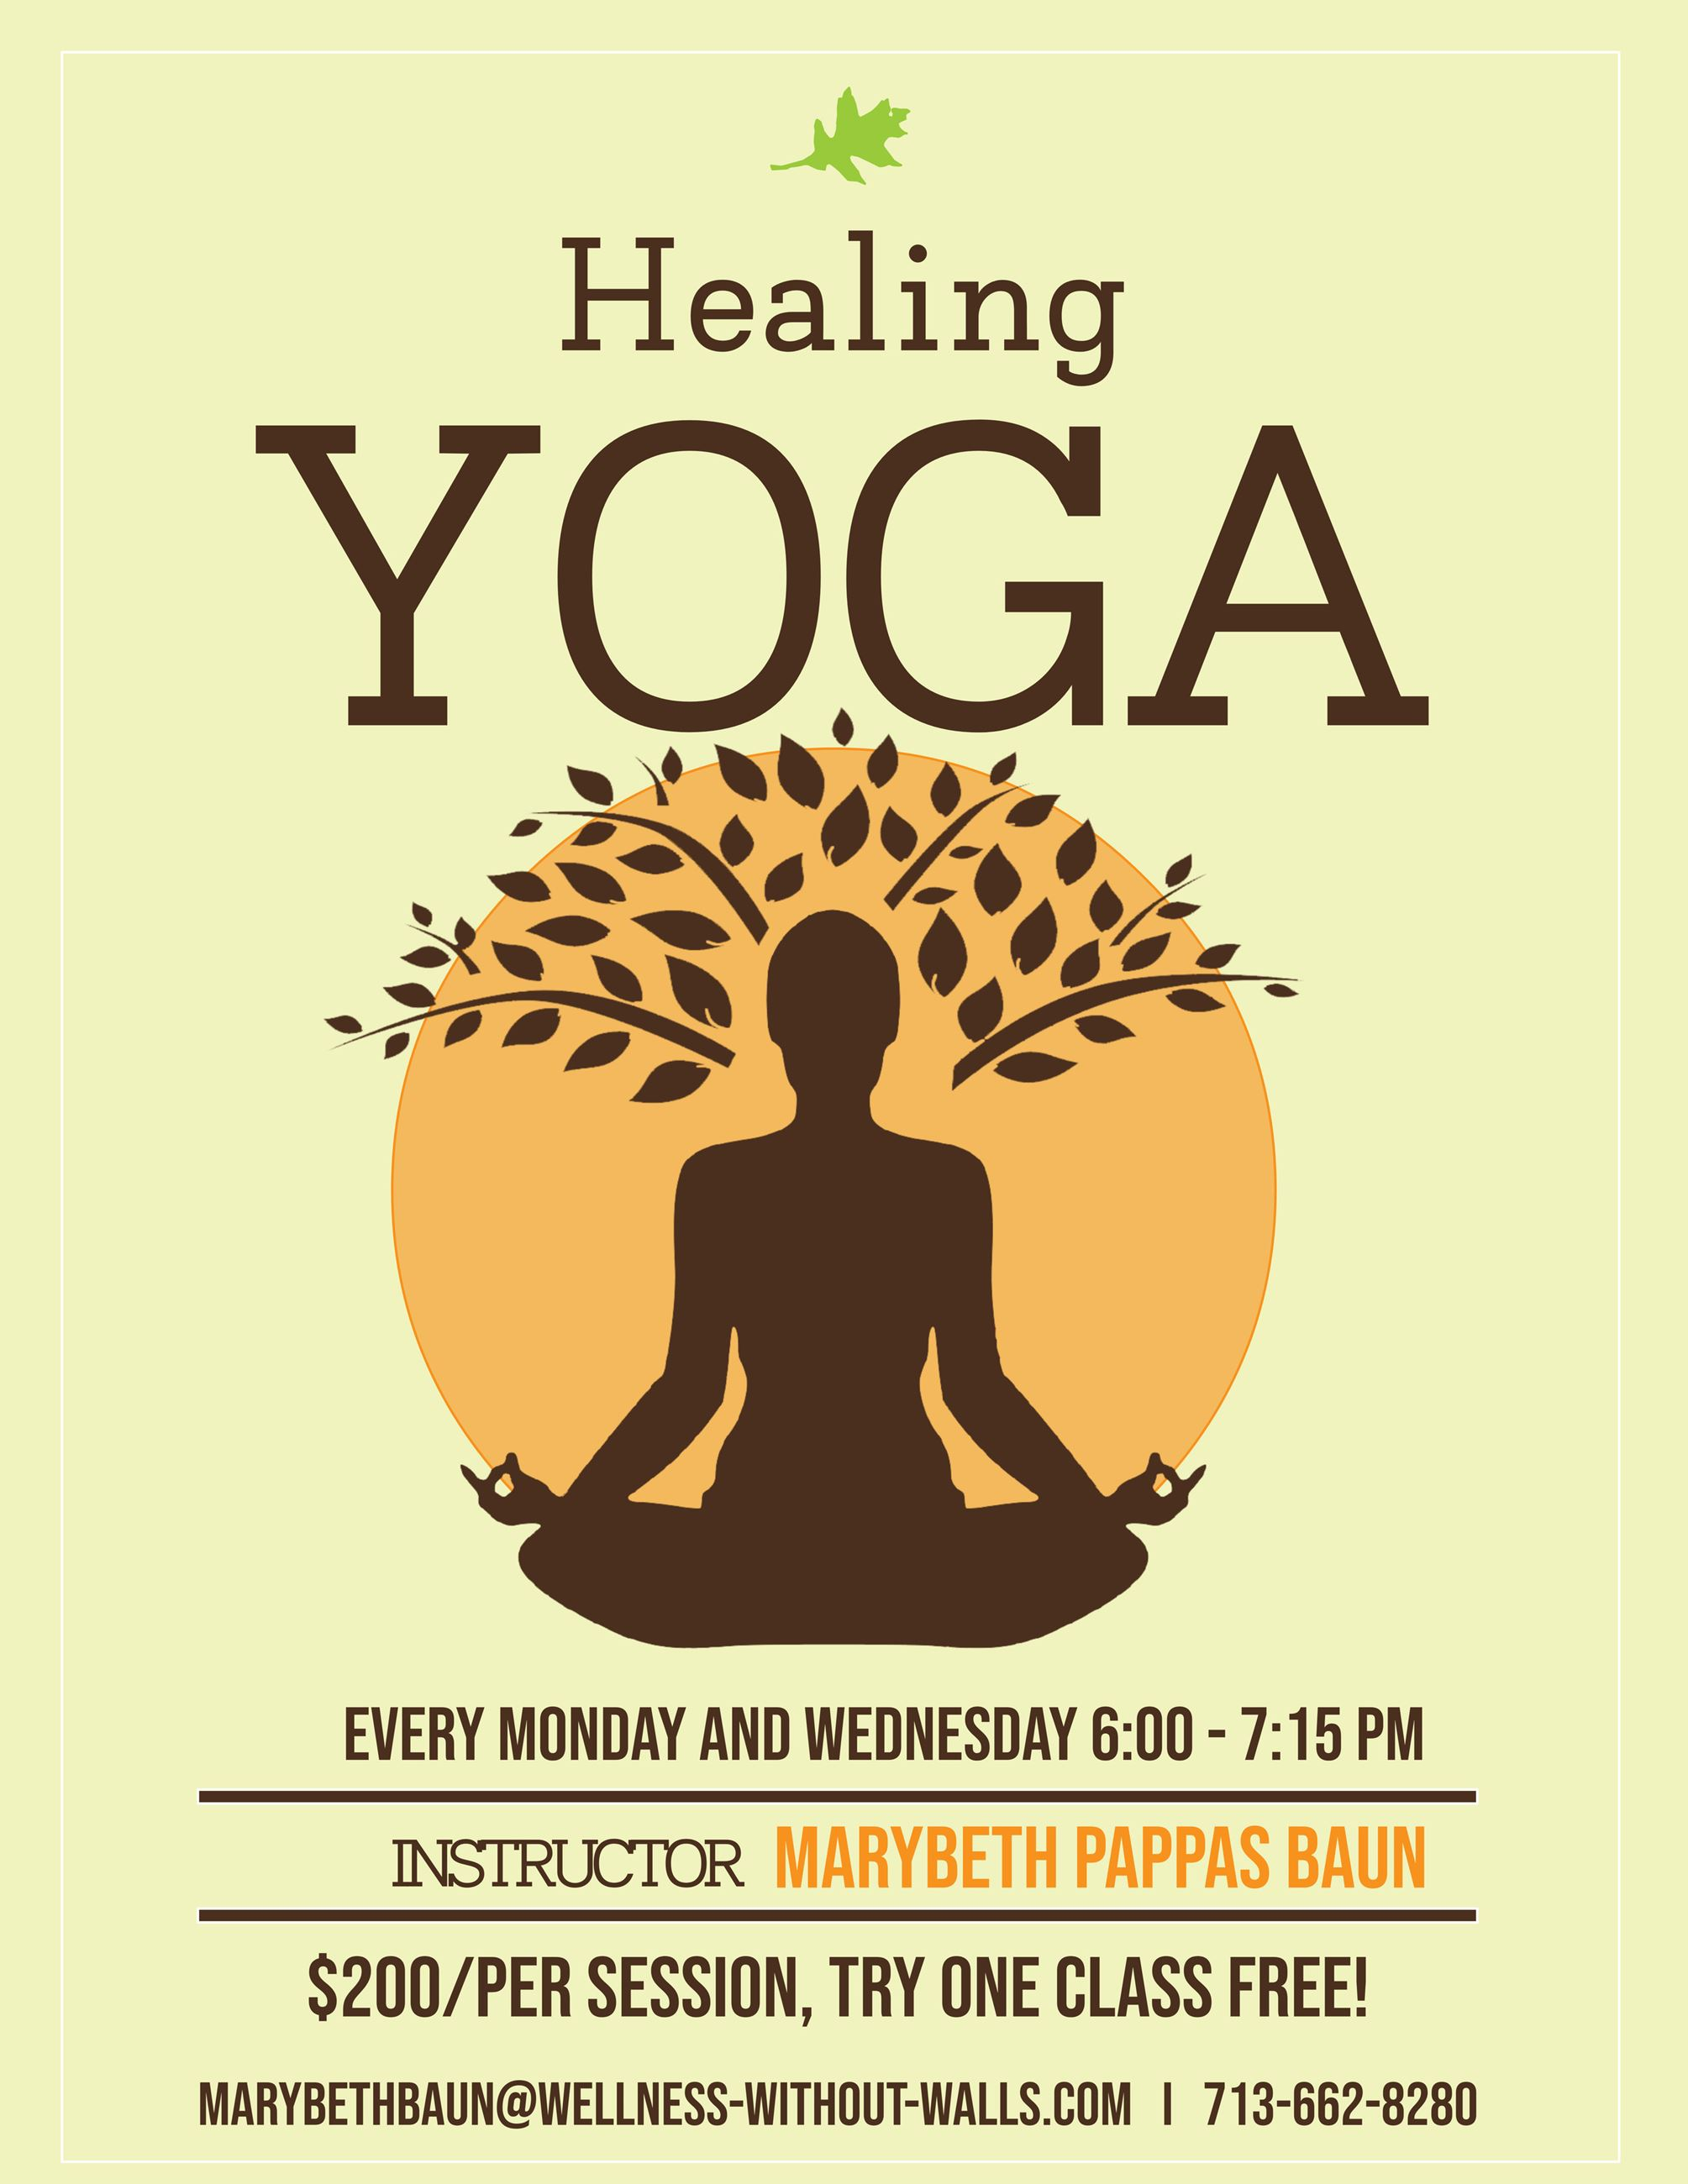 Healing Yoga Flyer Updated